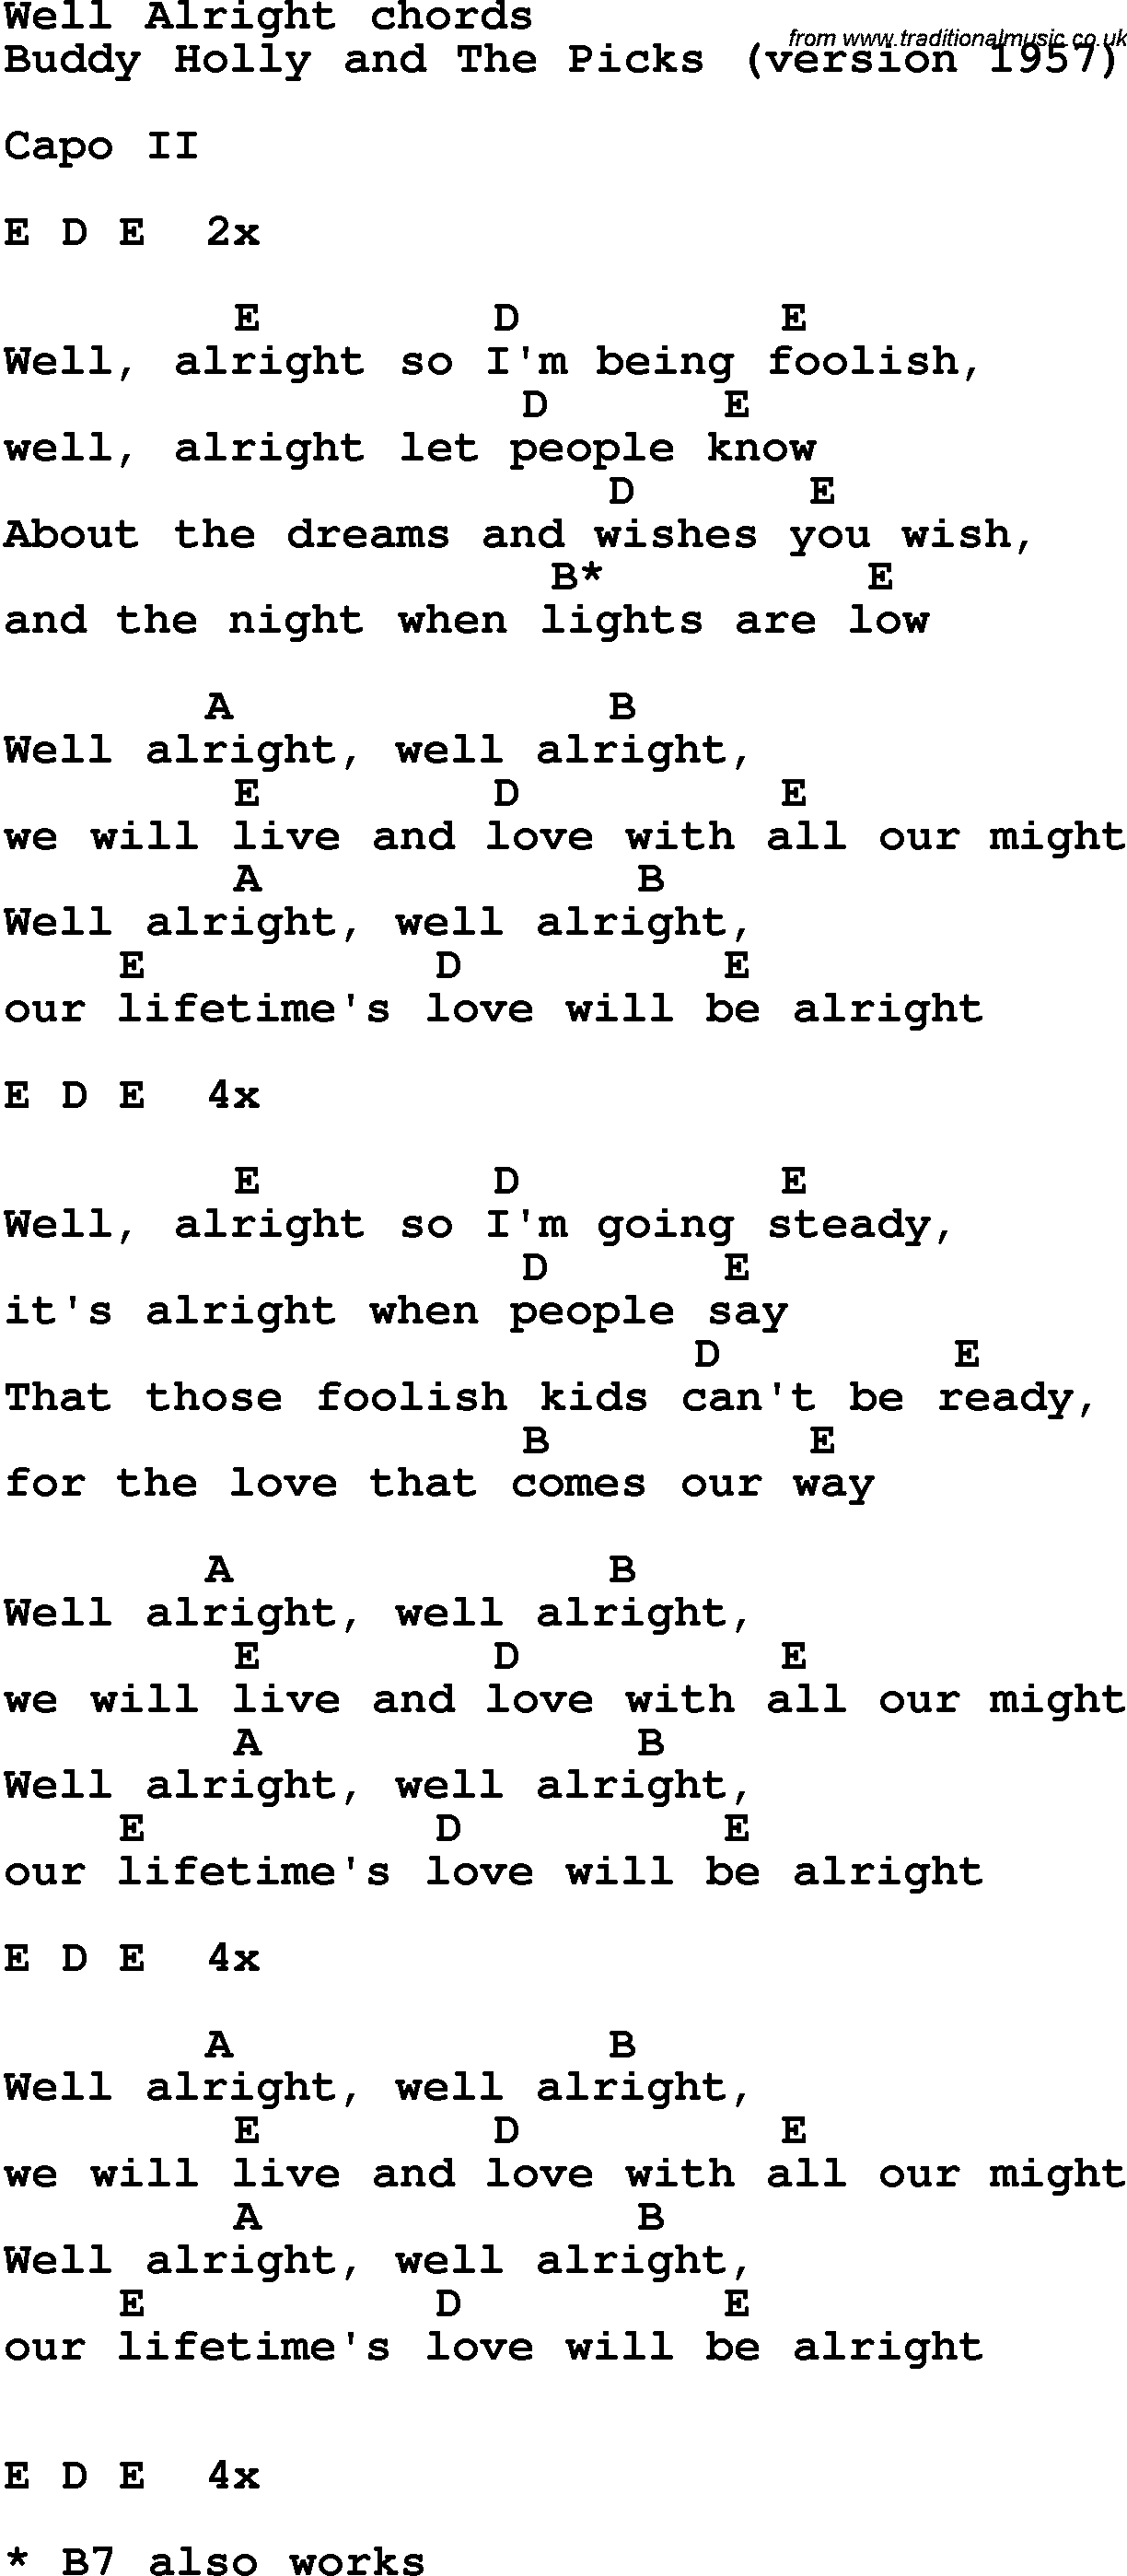 Song lyrics with guitar chords for Well Alright